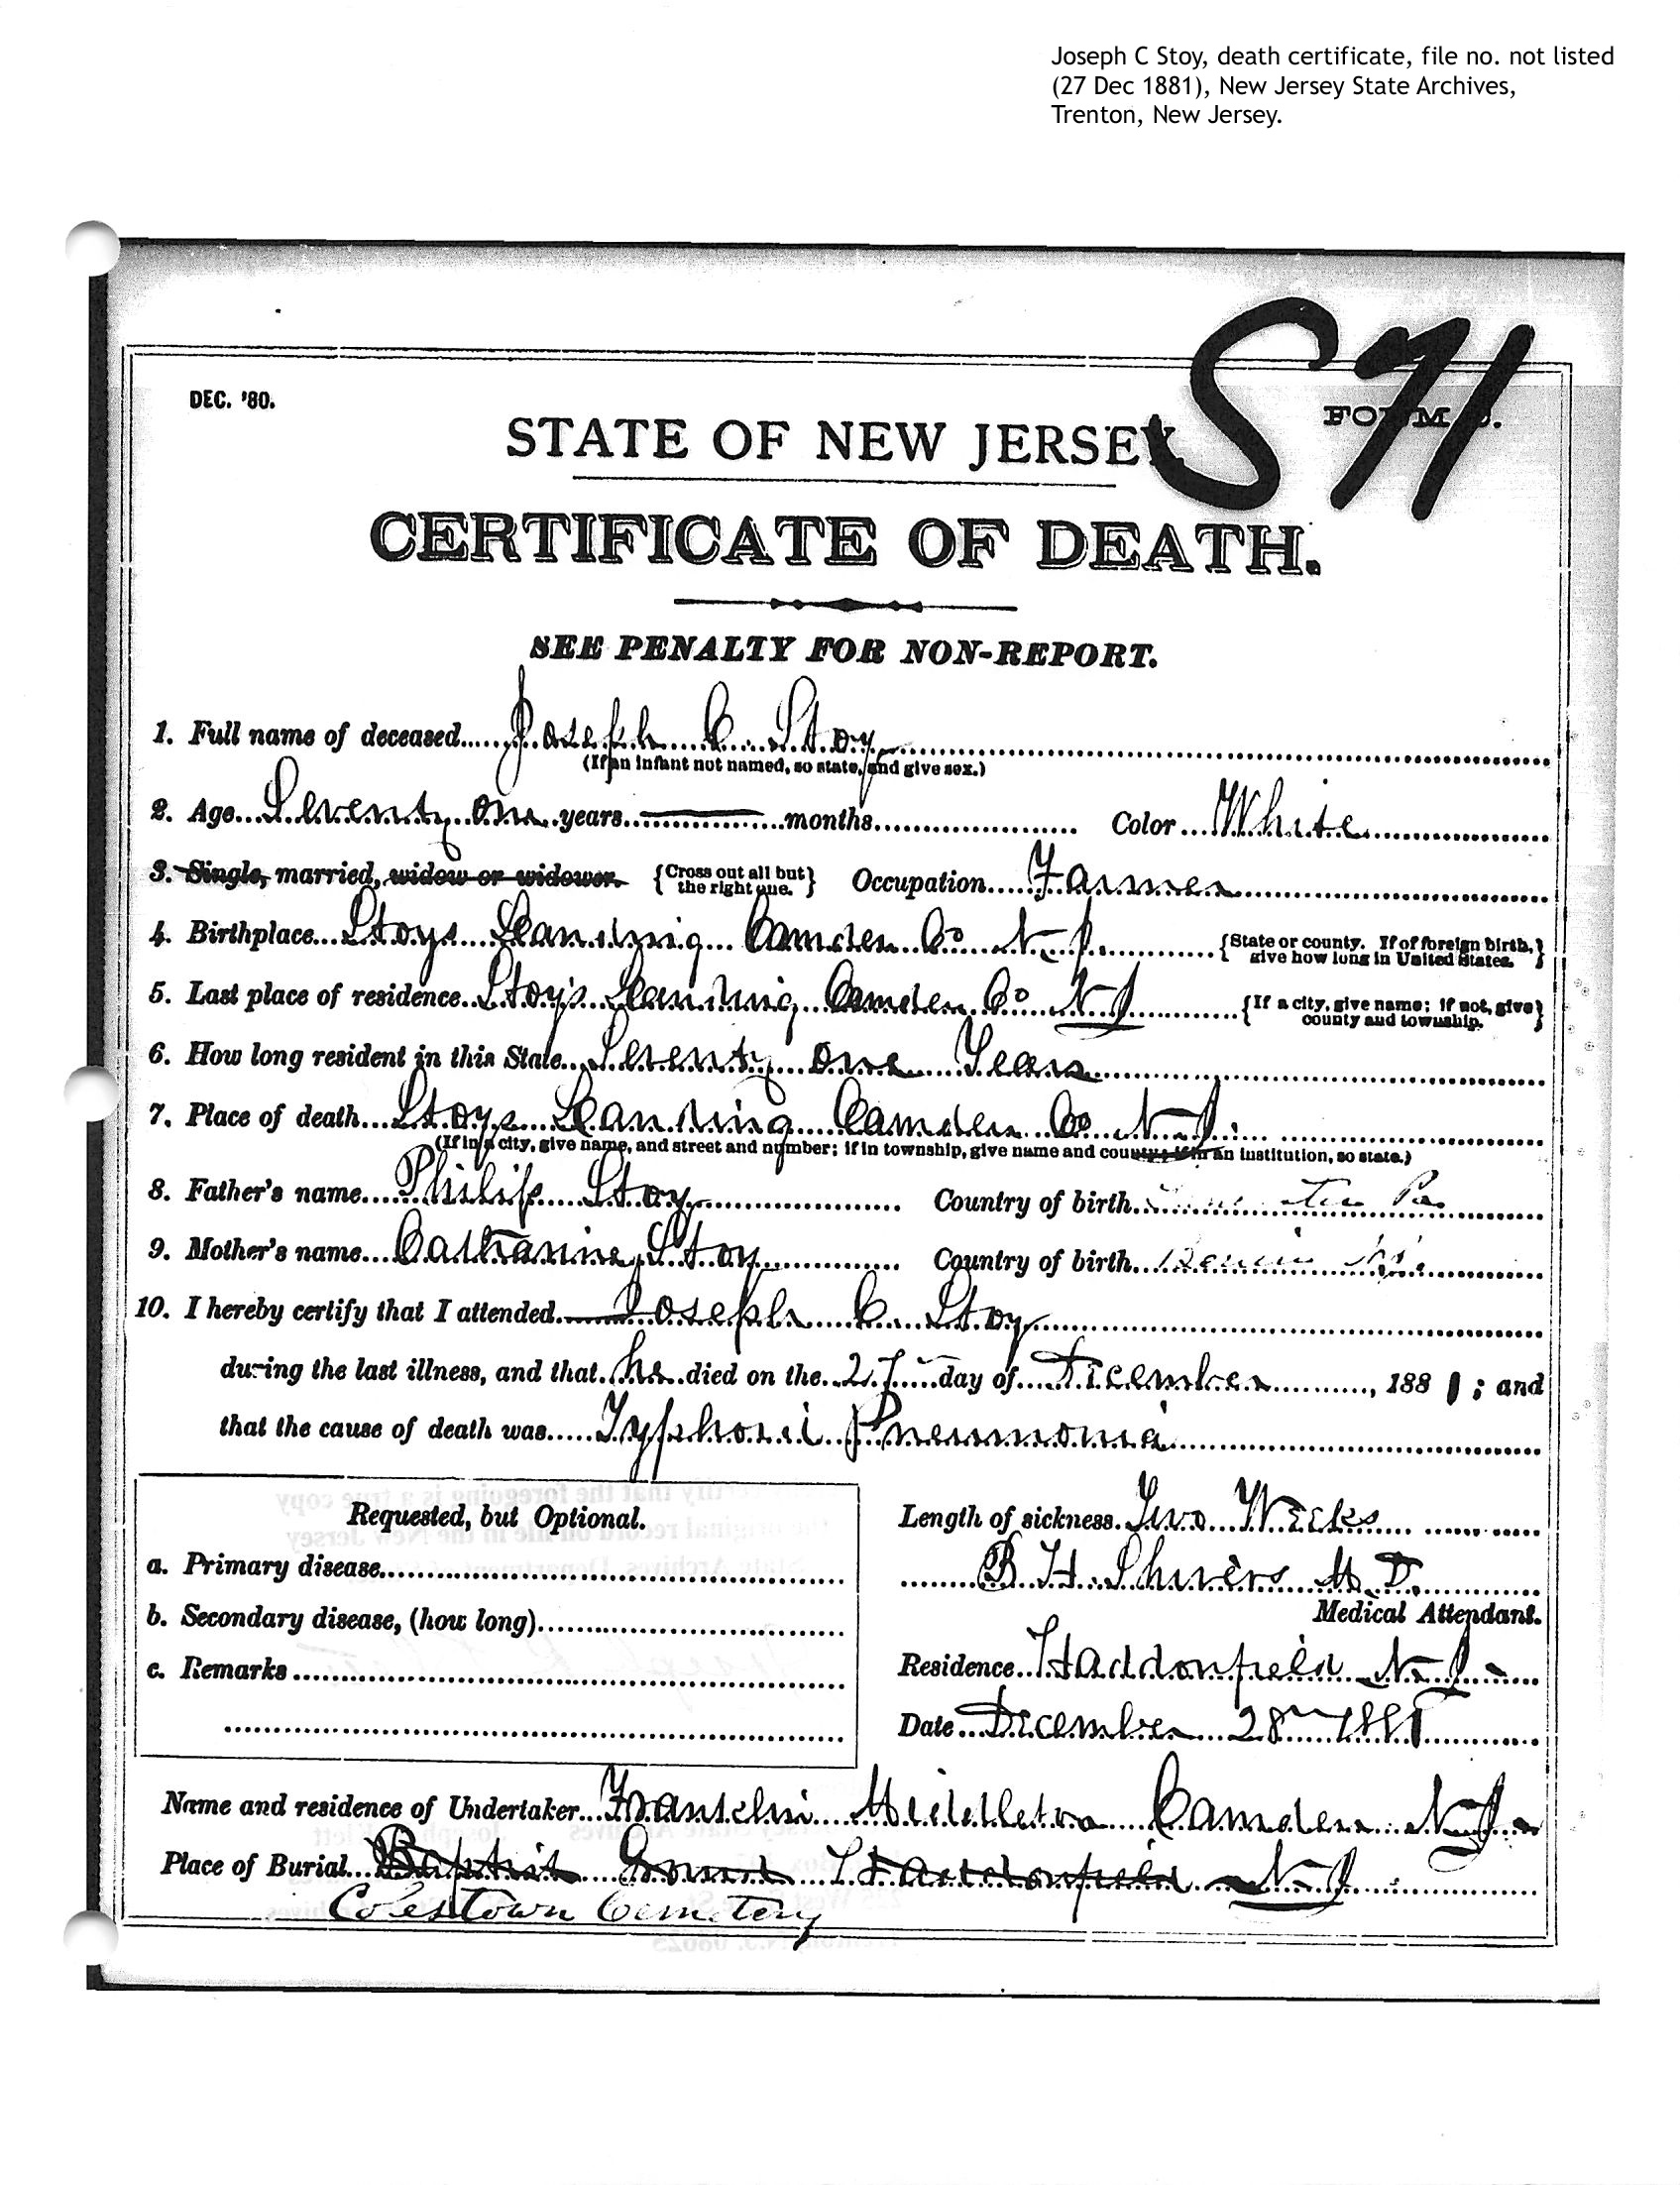 Stoy family genealogy person page death certificate joseph c stoy 1betcityfo Choice Image